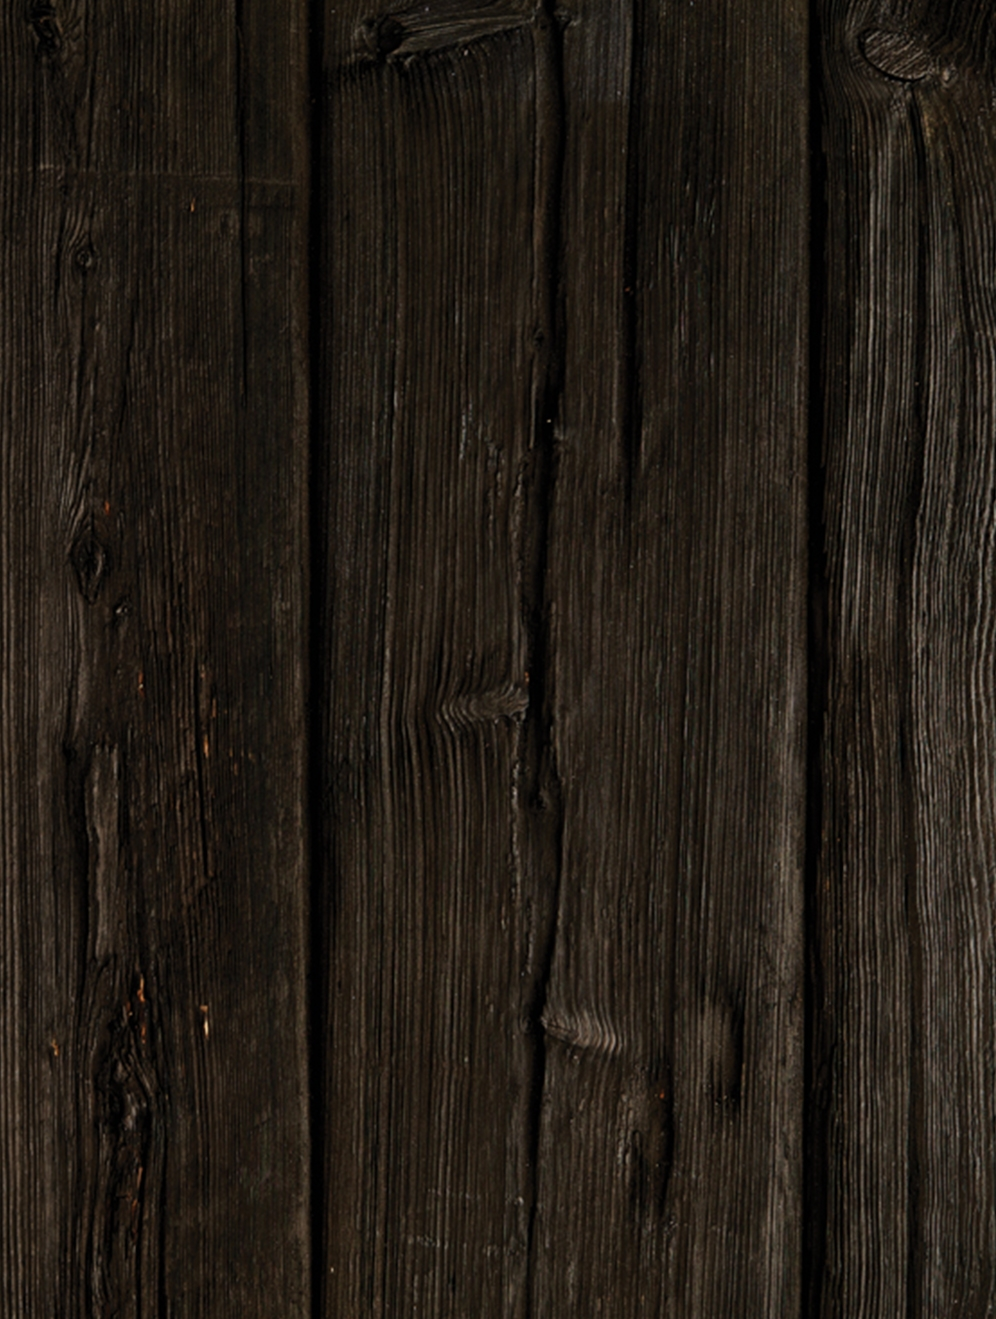 Reclaimed Hemlock Softwood Paneling [Charcoal Mushroom Wood]